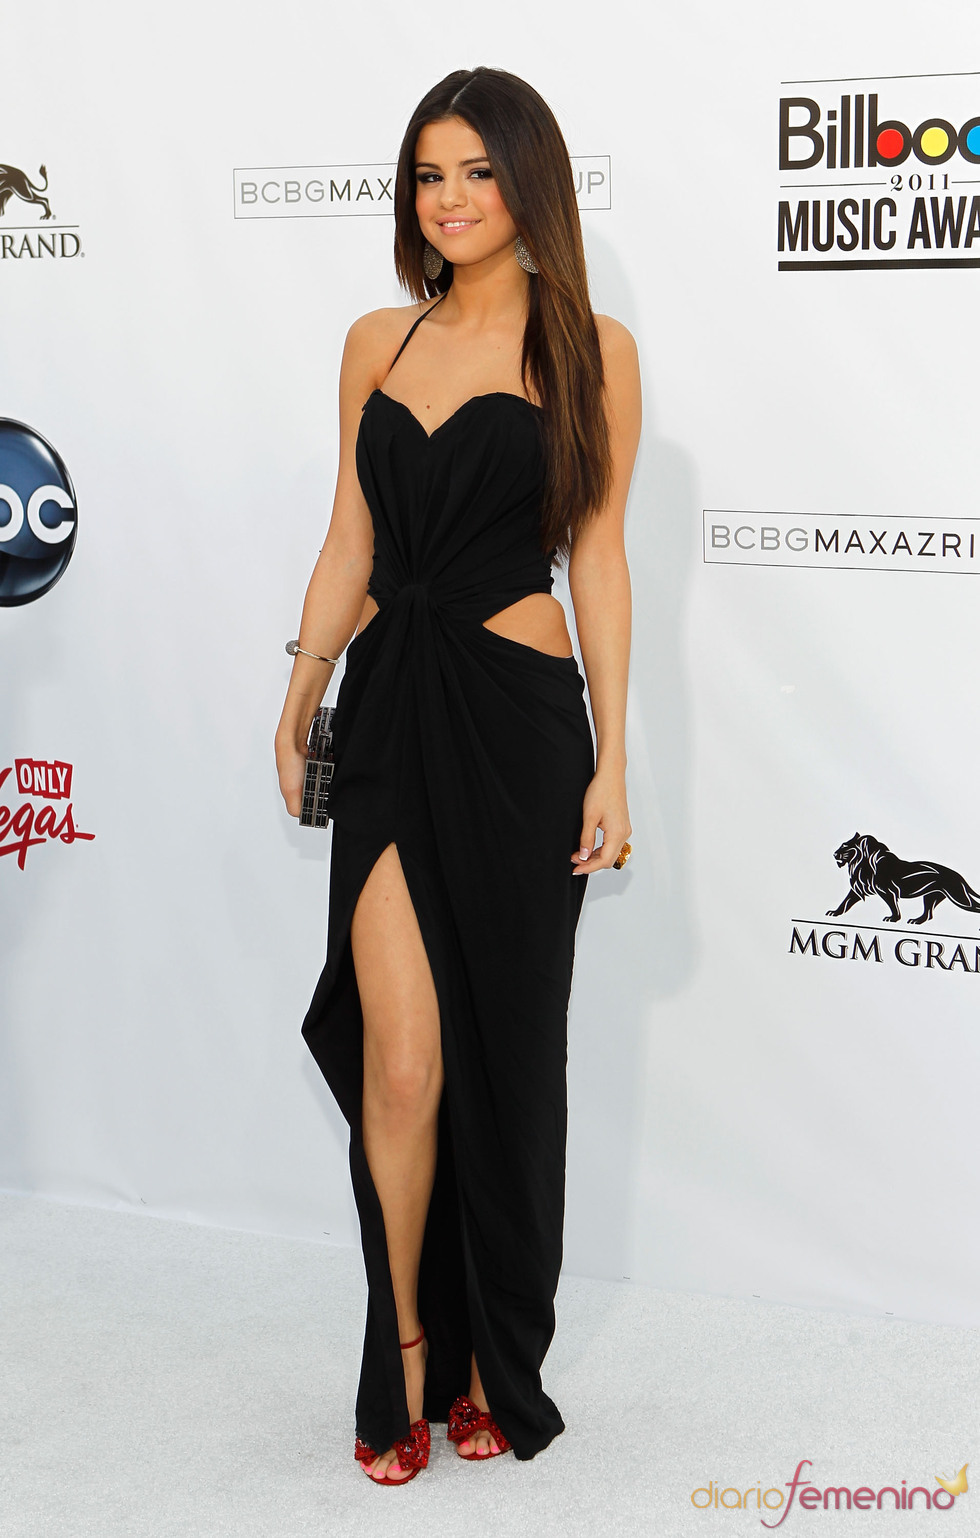 Selena Gomez en los Billboard Music Awards 2011